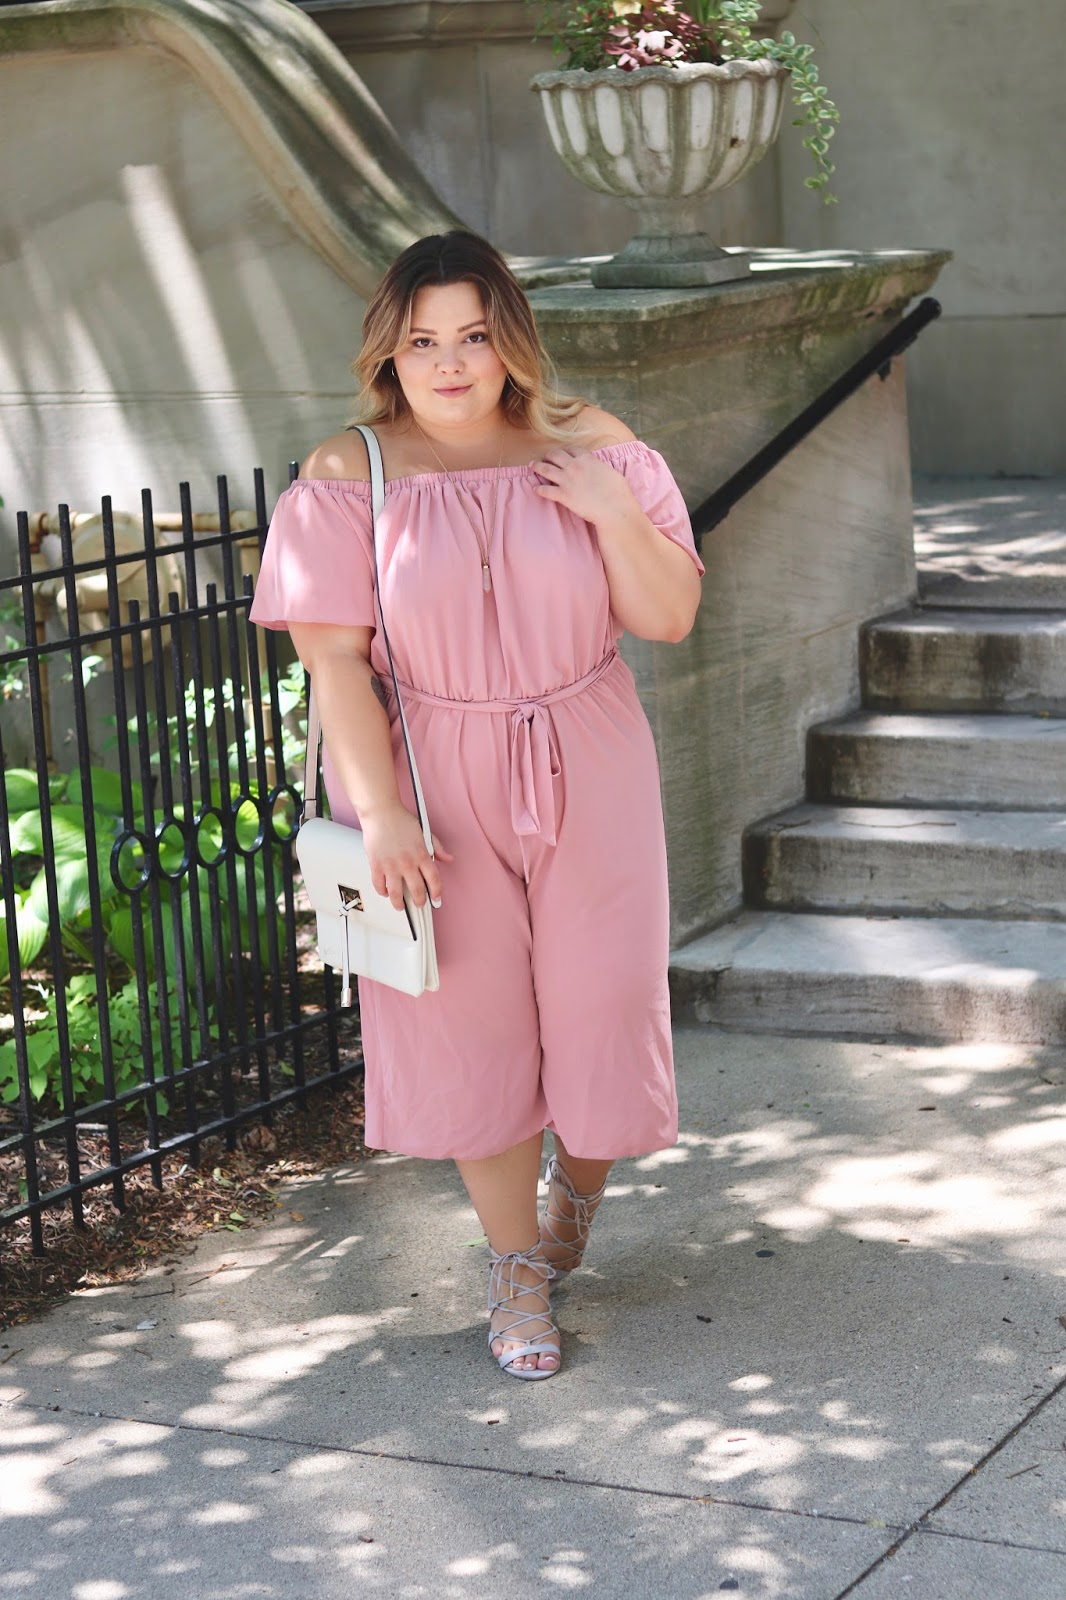 culotte jumpsuit, plus size jumpsuits, plus size rompers, affordable plus size fashion, back to school plus size fashion, natalie craig, natalie in the city, plus size fashion, plus size fashion blogger, Chicago fashion blogger, Chicago style, midwest blogger, yours clothing, plus size outfit, romantic outfit, curves and confidence, fatshion